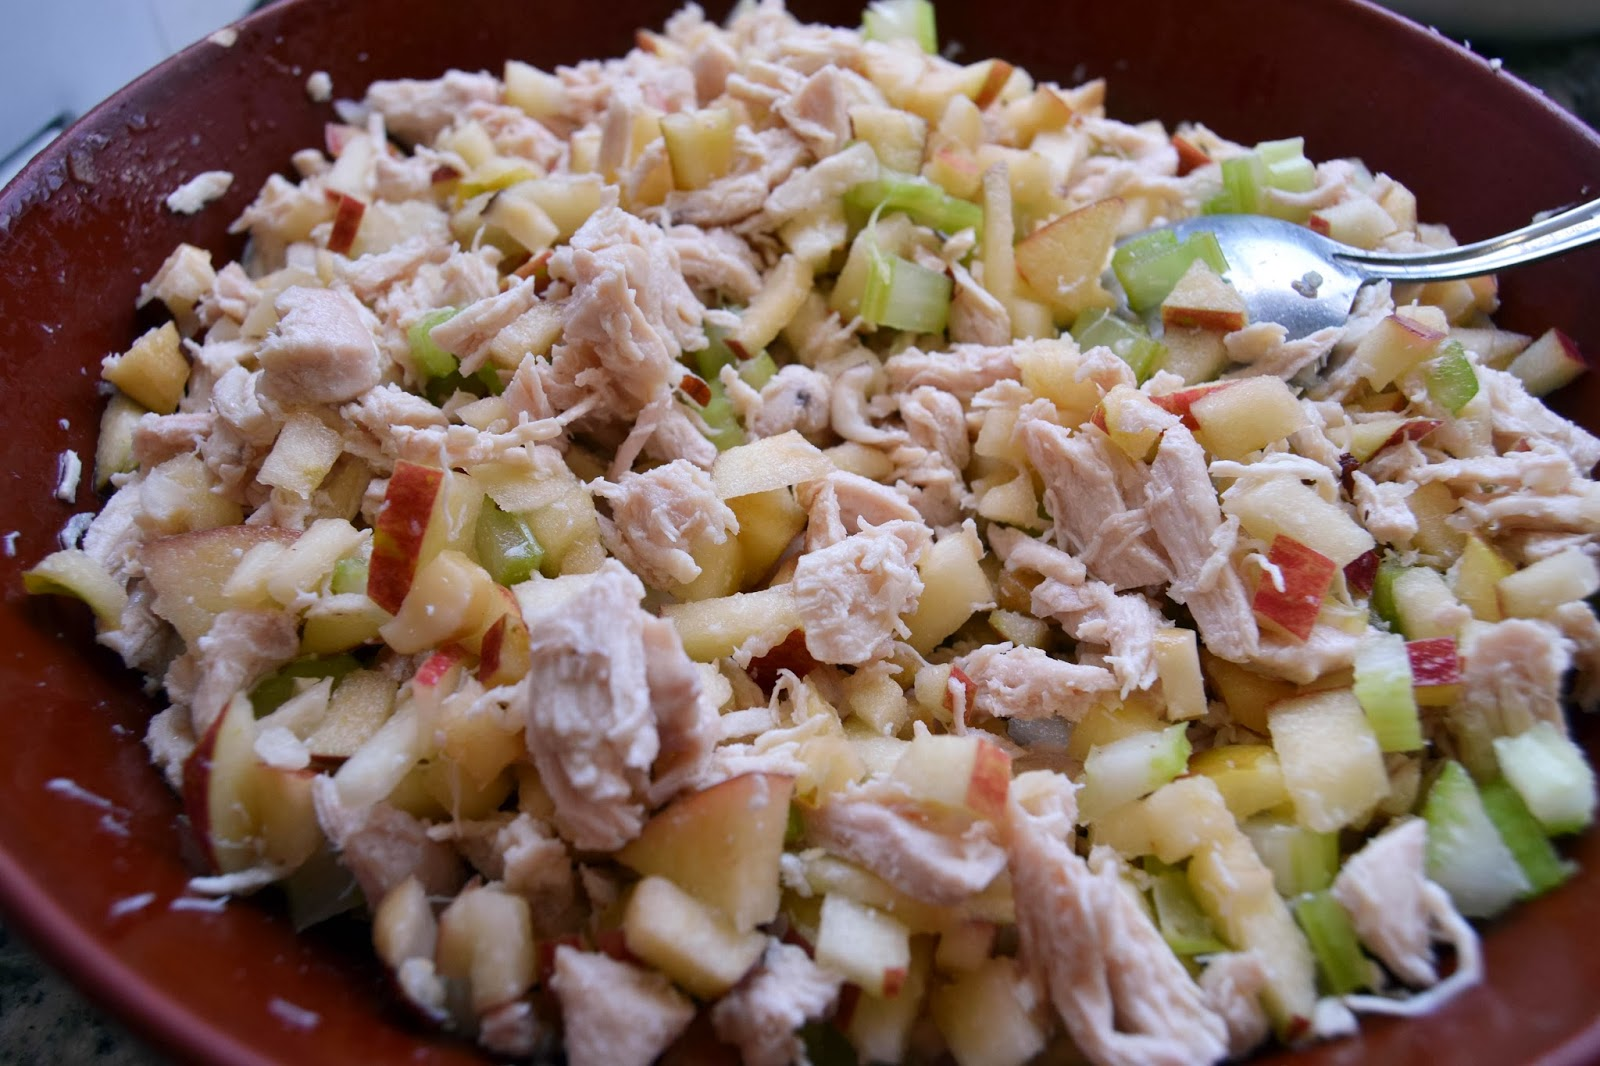 salpicão-salada-chicken-and-potato-salad-brazilian-food-recipes